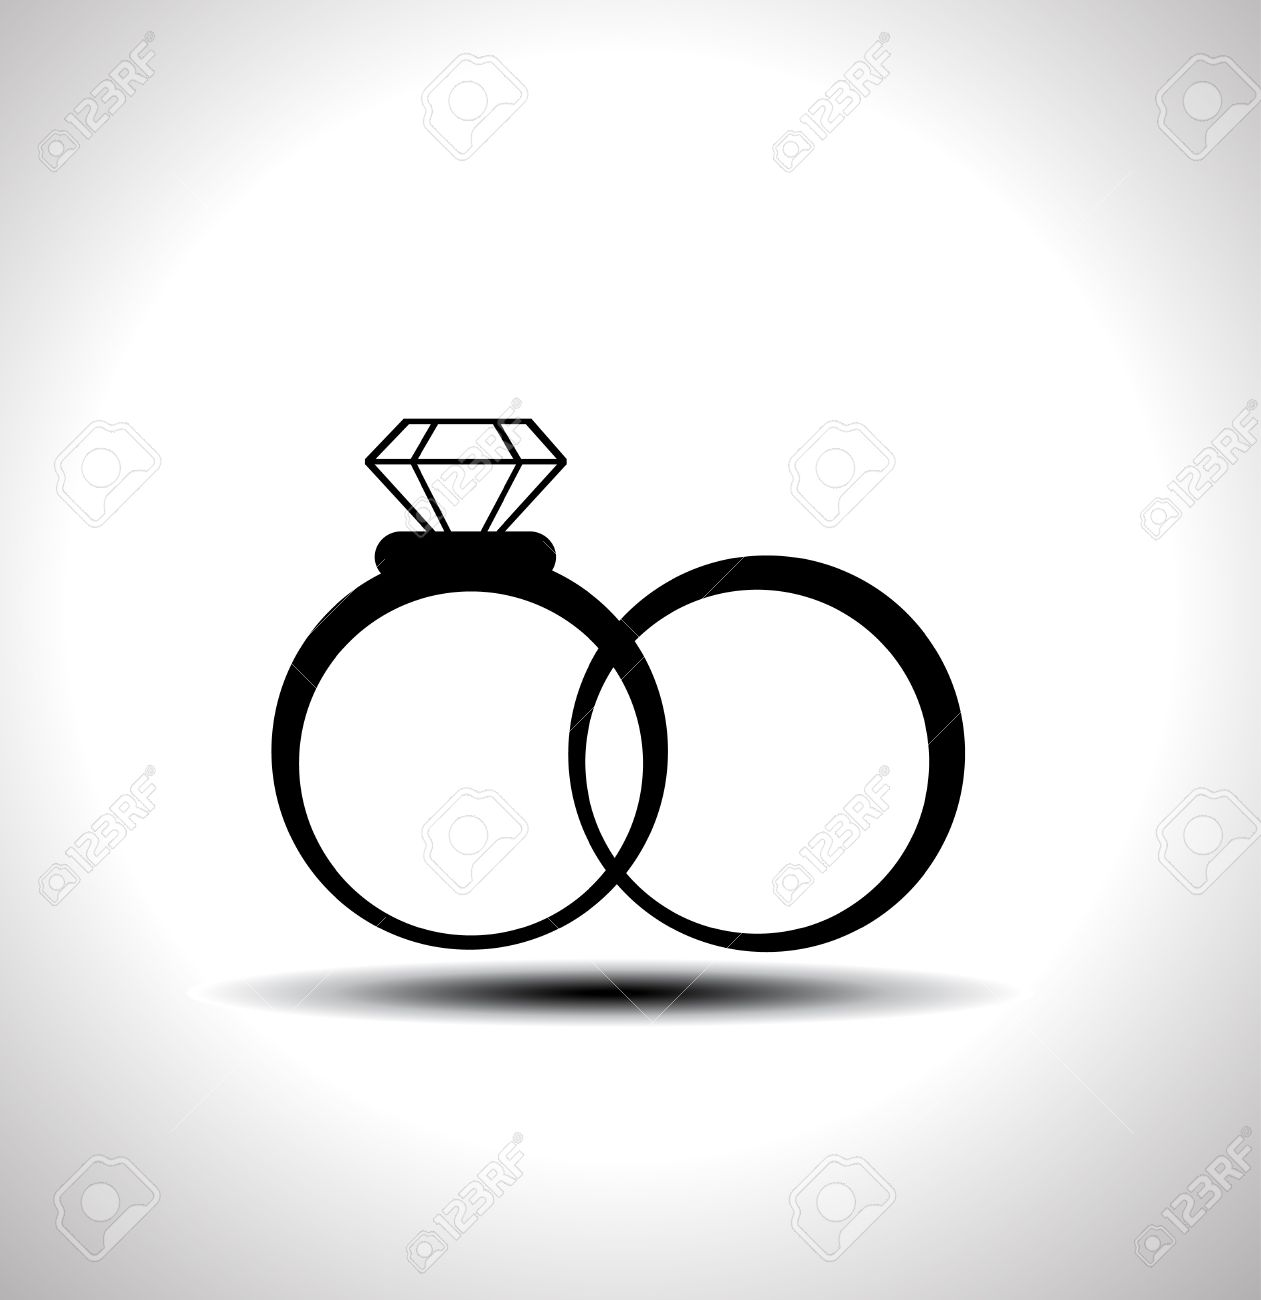 Wedding rings vector  Vector Black Wedding Rings Icon Royalty Free Cliparts, Vectors ...